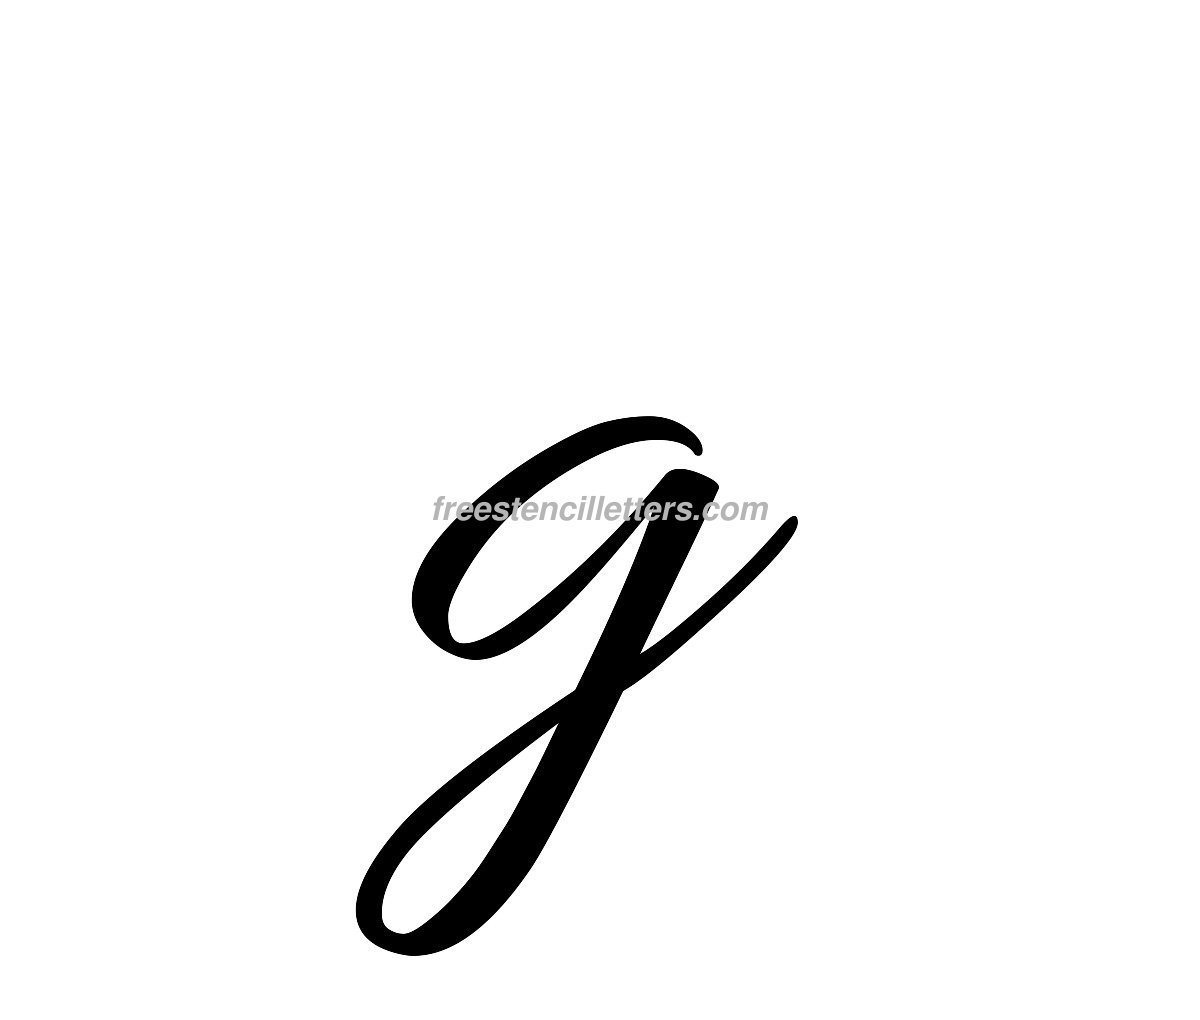 worksheet G Cursive cursive letter g all about design in laptuoso